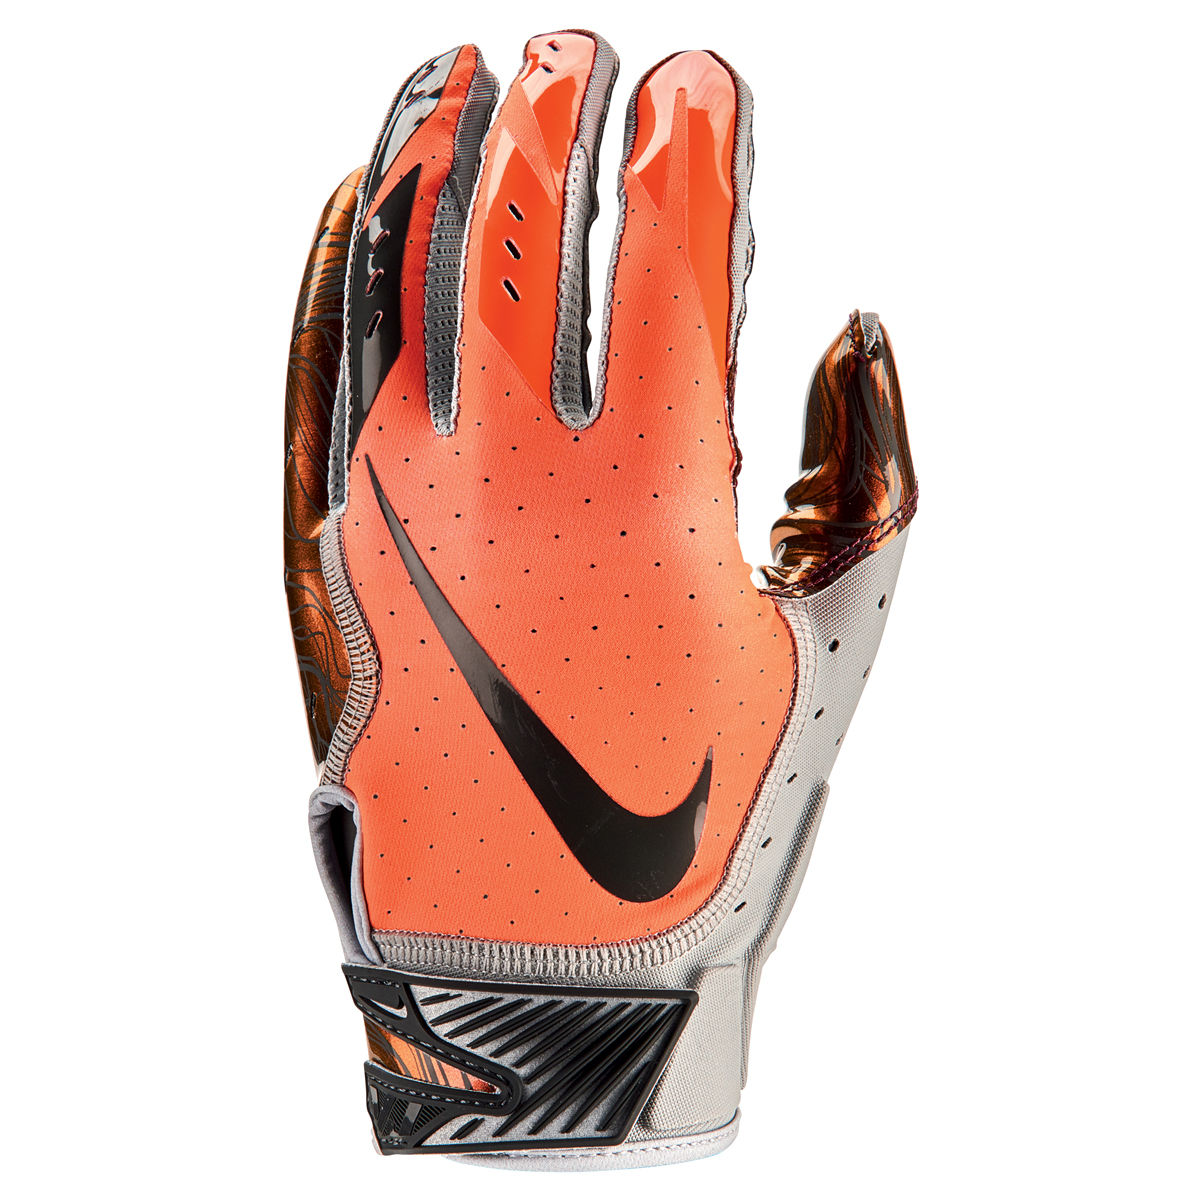 Nike Vapor Jet Adult Football Glove